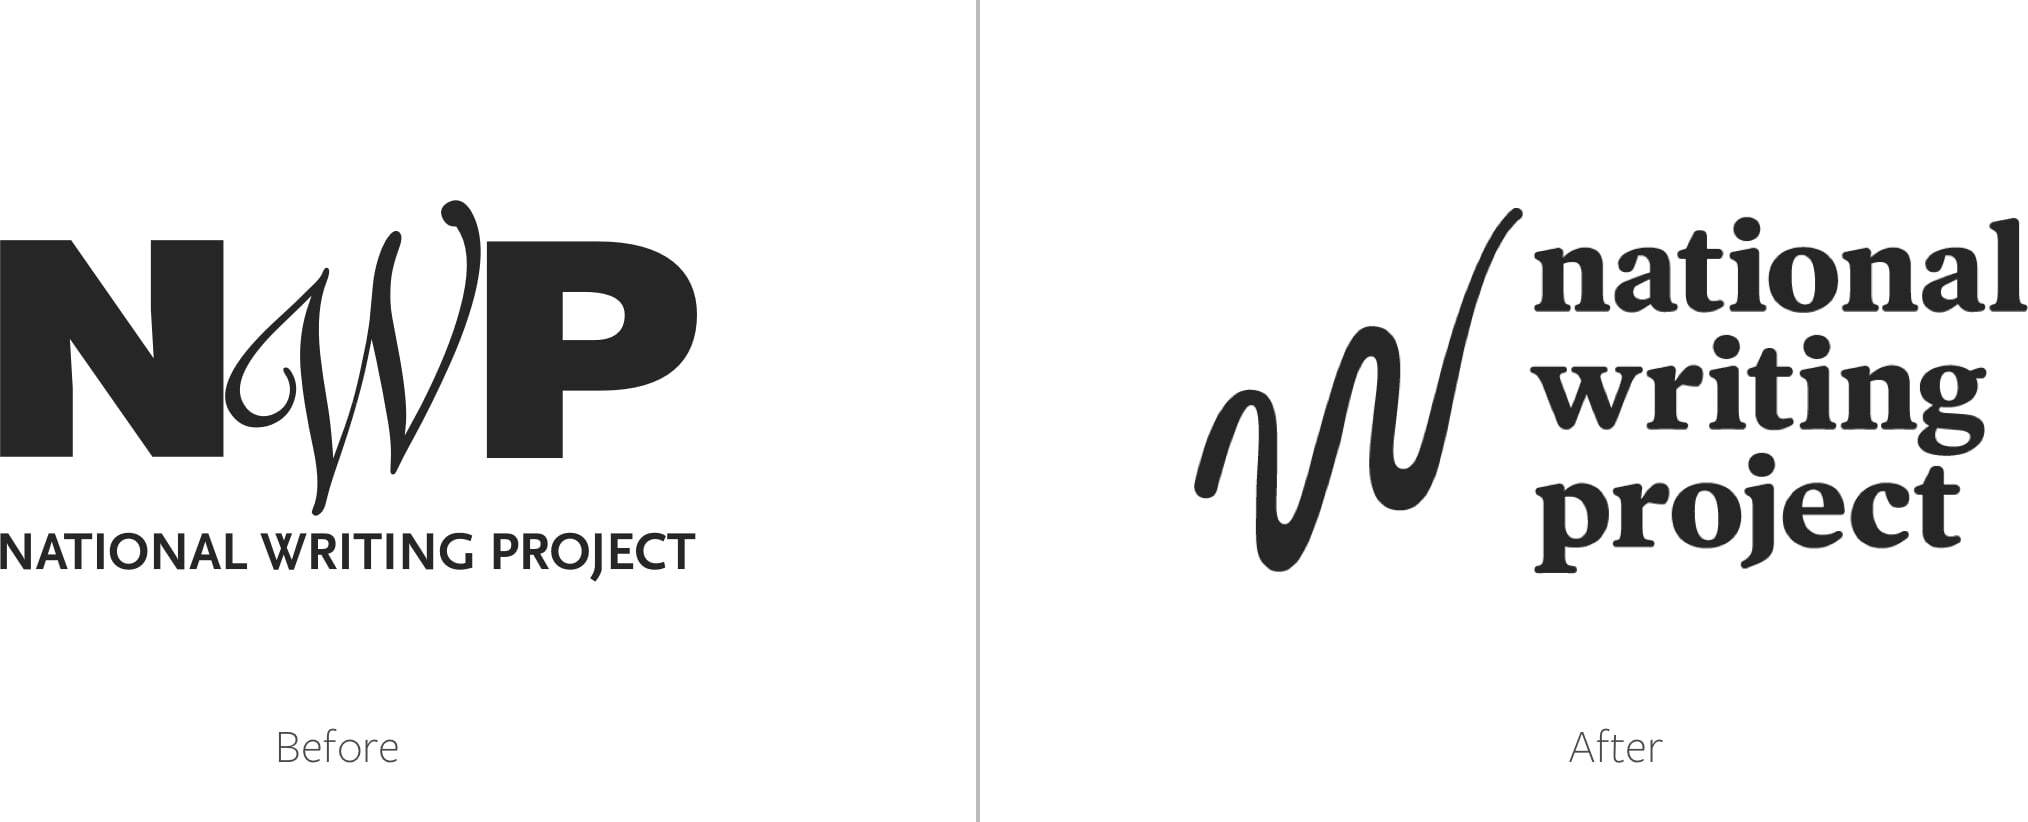 Nwp identity logos before after fullwidth